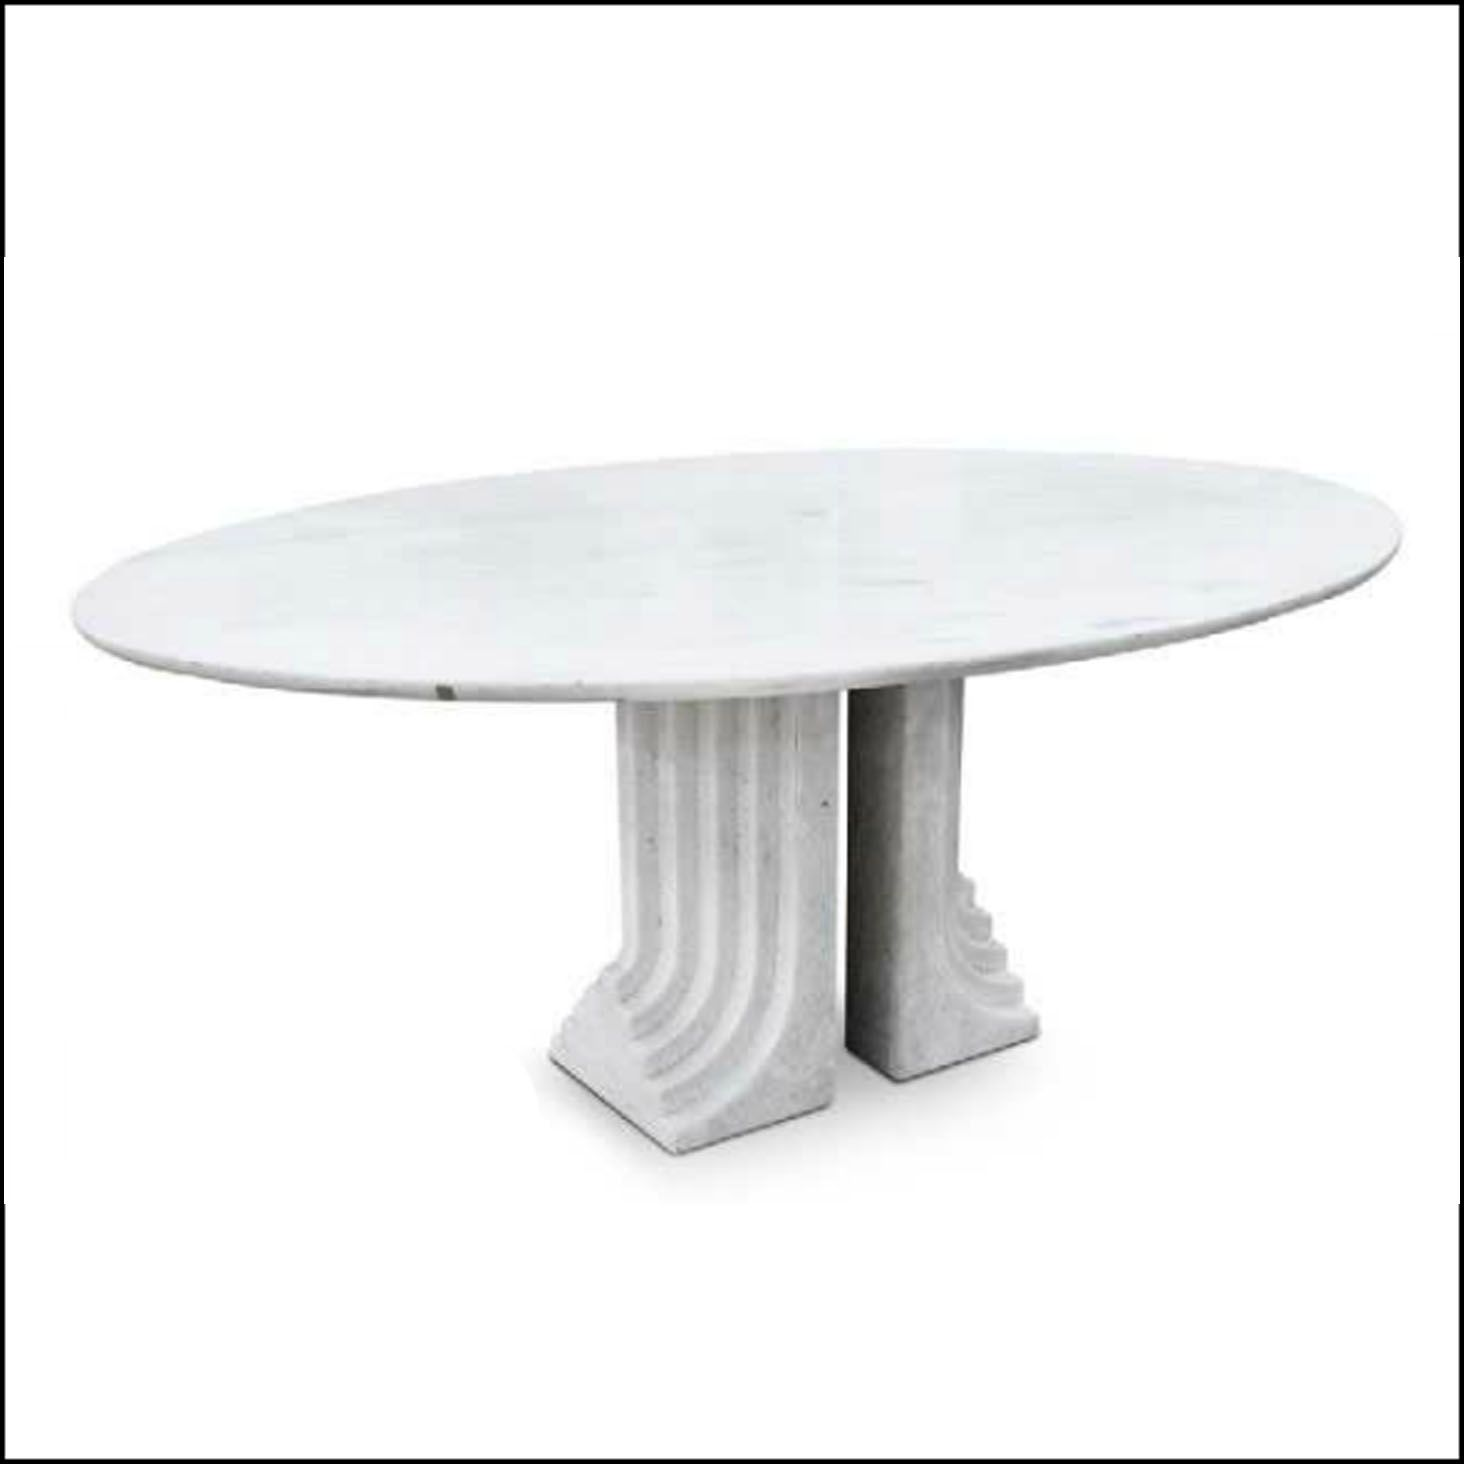 Dining Room Table Samo Carlo Scarpa 1970 Oval table in white marble ...